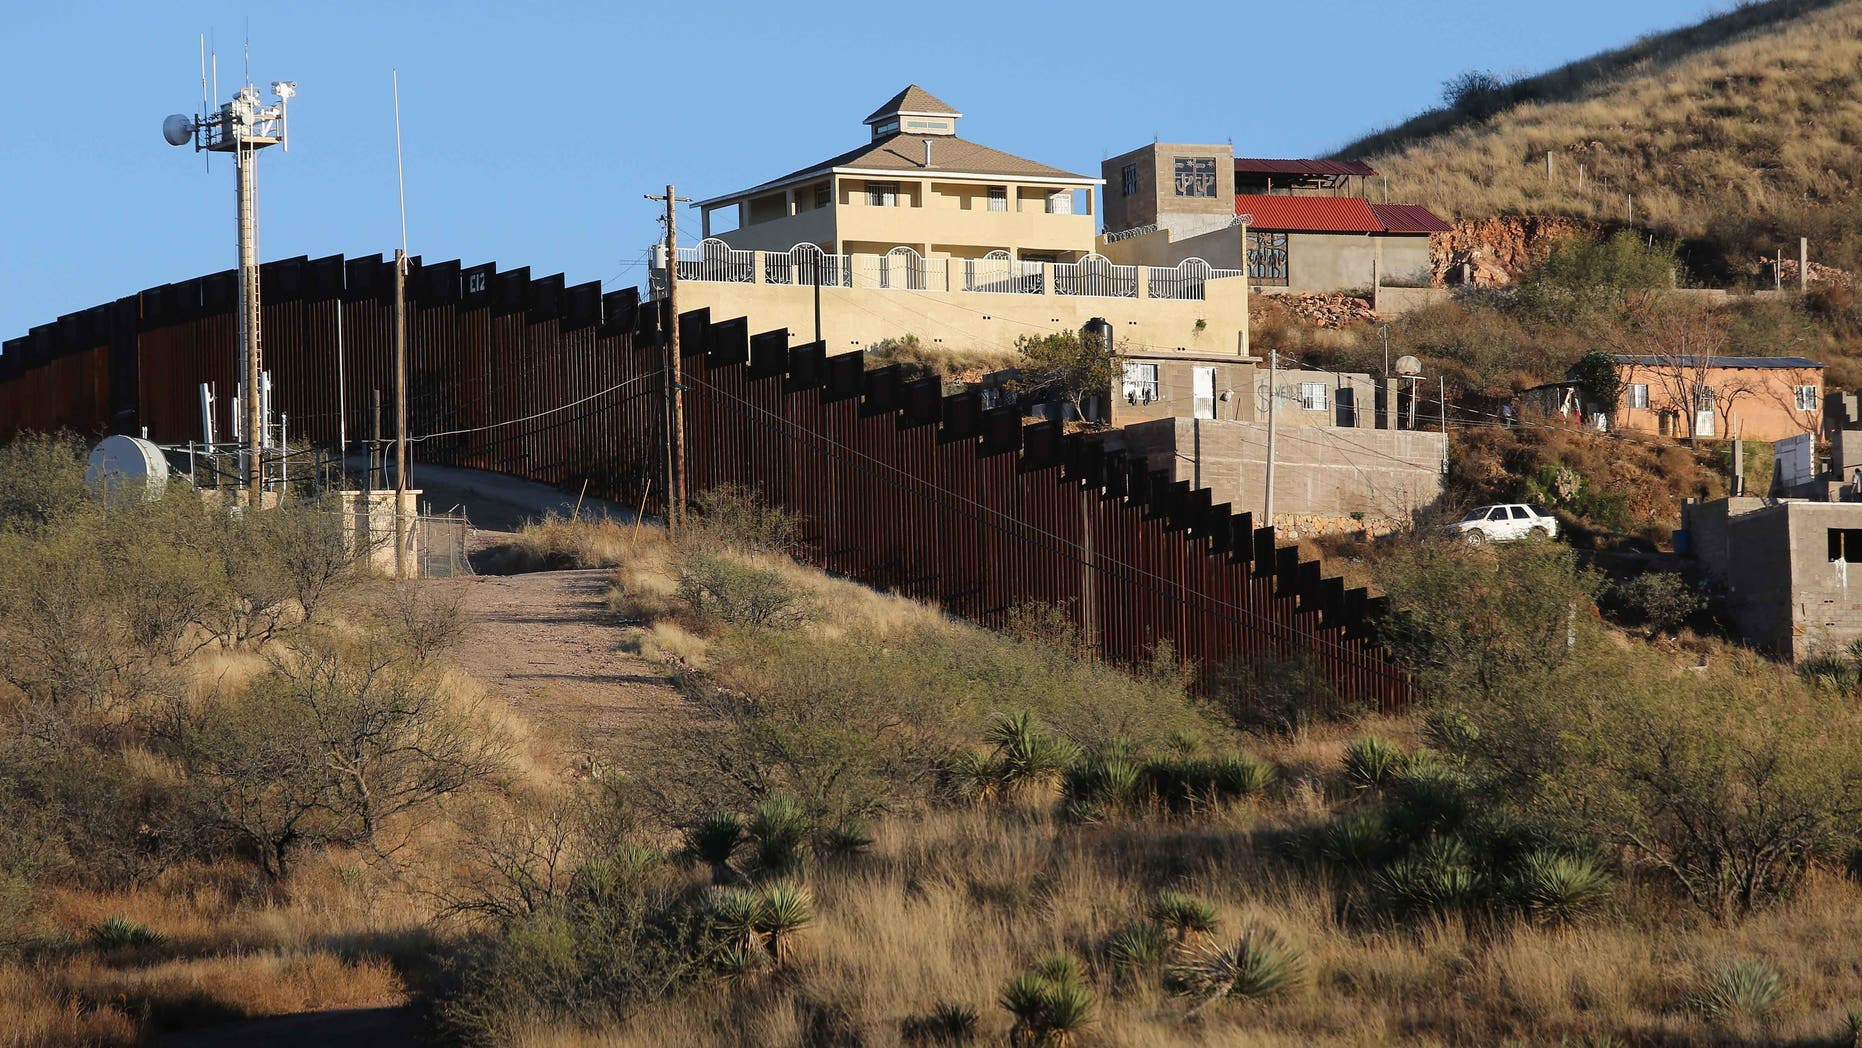 NOGALES, AZ - DECEMBER 09:  A suspected narco obvervation house stands on the Mexican side of the U.S.-Mexico border fence on December 9, 2014 near Nogales, Arizona. With increased manpower and funding in recent years, the Border Patol has seen the number illegal crossings and apprehensions of undocumented immigrants decrease in the Tucson sector. Agents are waiting to see if the improved U.S. economy and housing construction will again draw more immigrants from the south.  (Photo by John Moore/Getty Images)